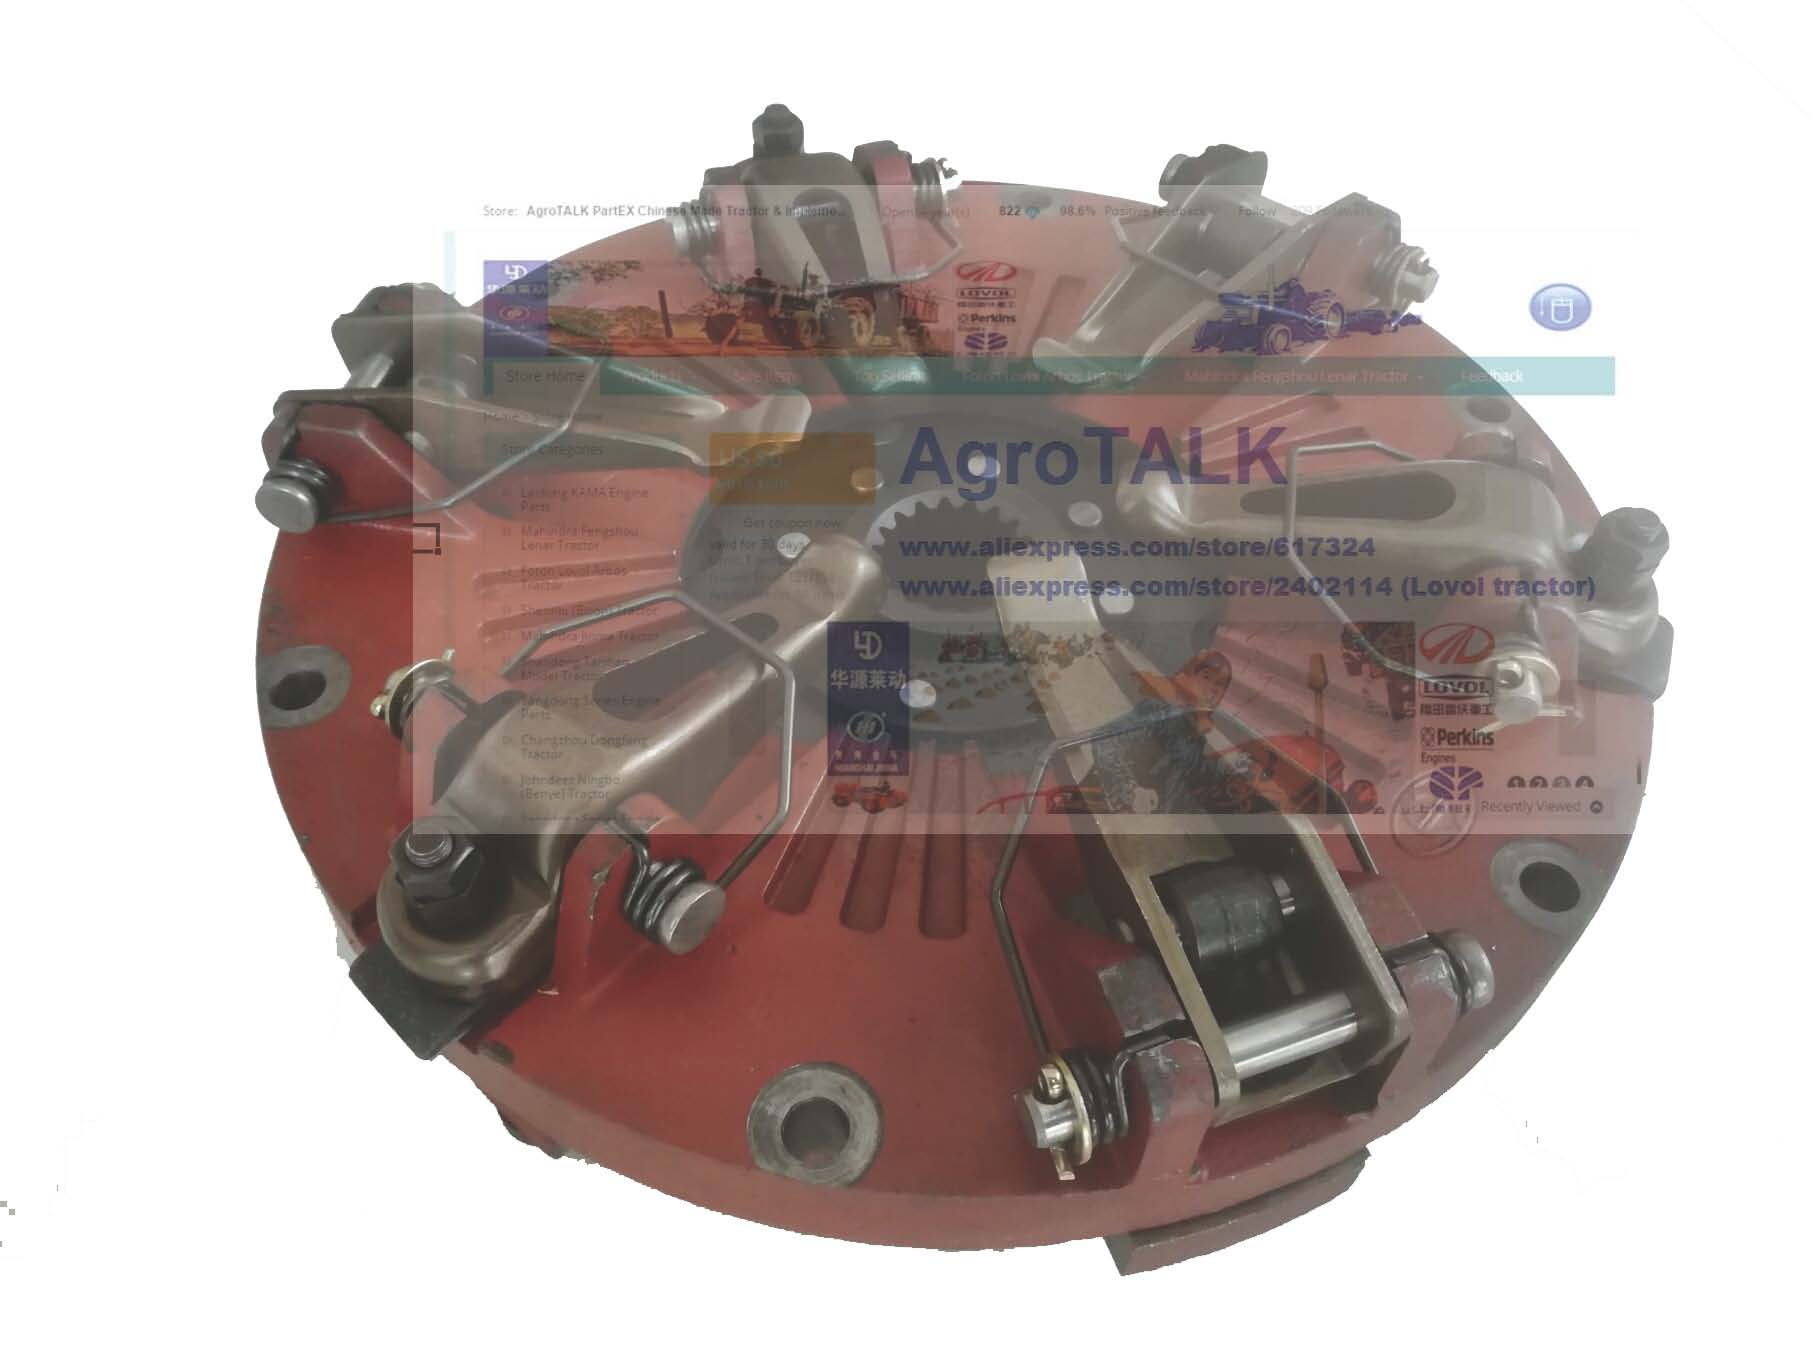 TB550.211A, The 10 Inch Clutch With PTO Disc  For Foton FT404 FT454 TB504 Tractor, Please Check The Diameter Of Your Clutch